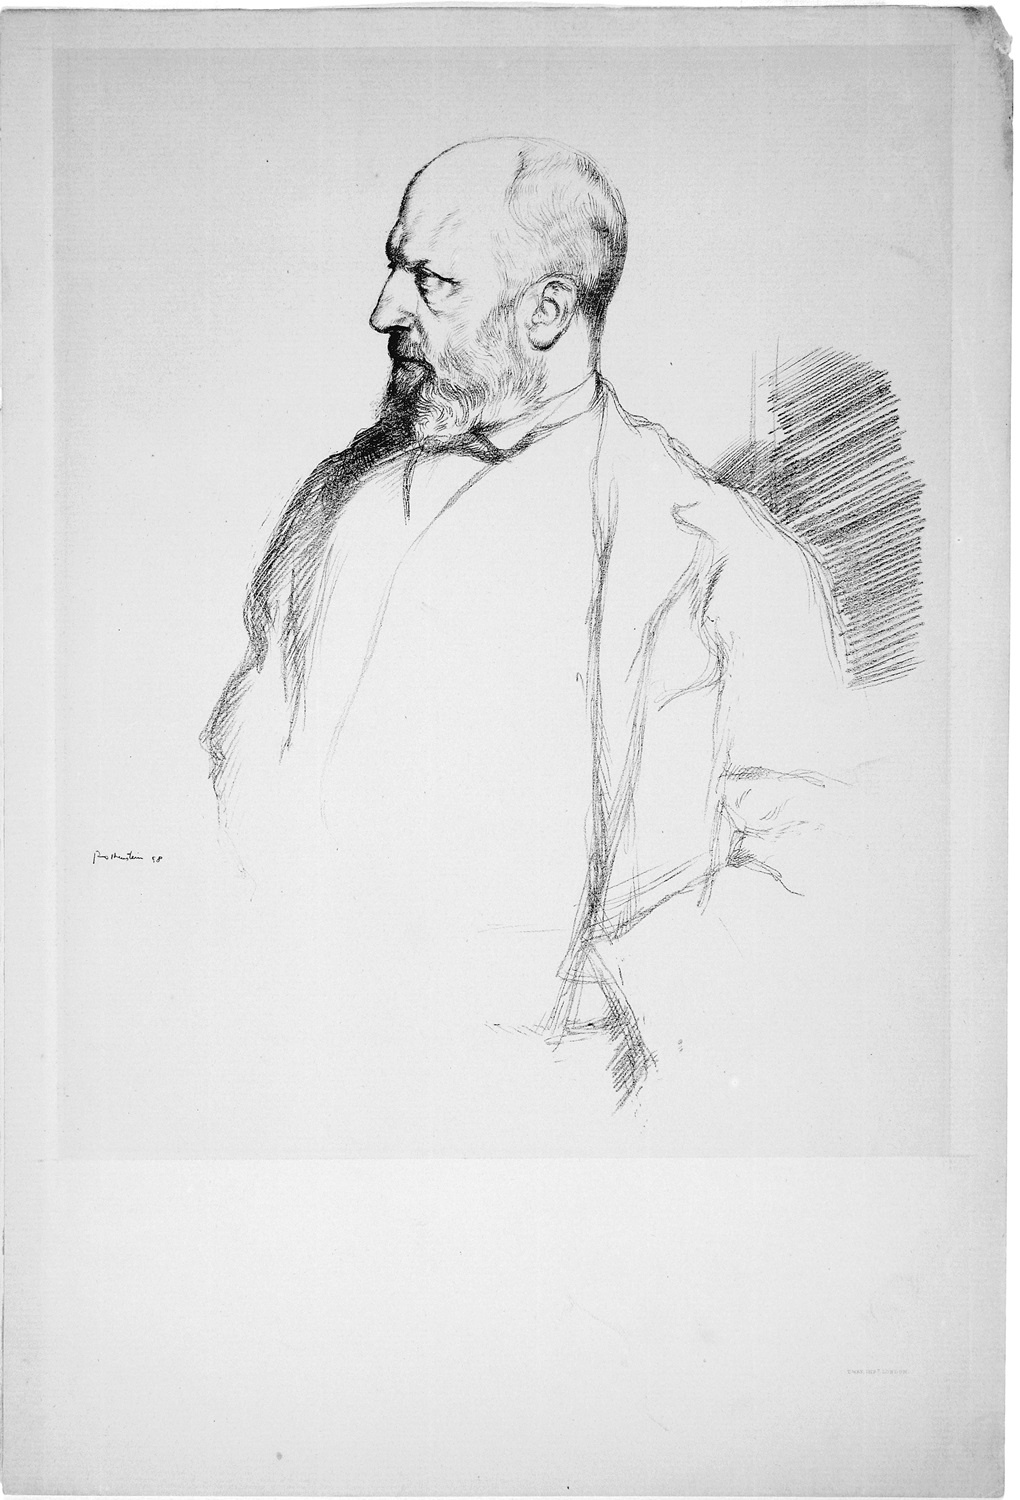 Henry James is standing. His head is turned with the left profile of his face in view. He is wearing a jacket.